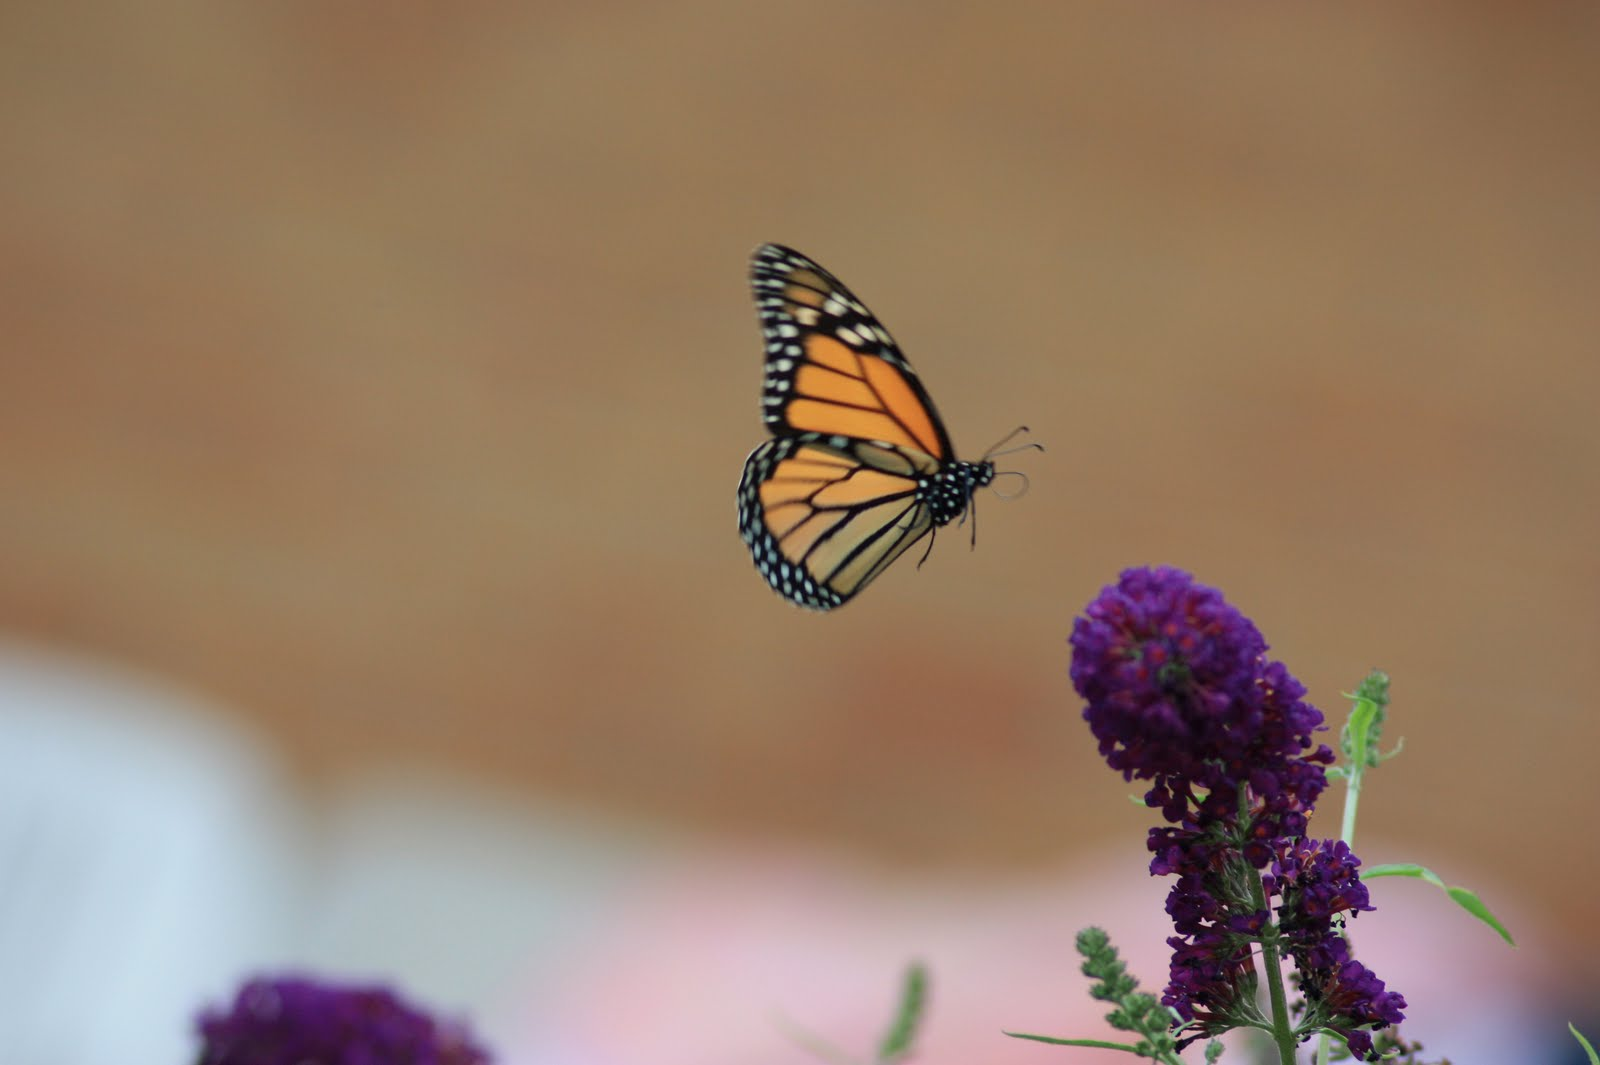 images of butterflies flying - photo #12